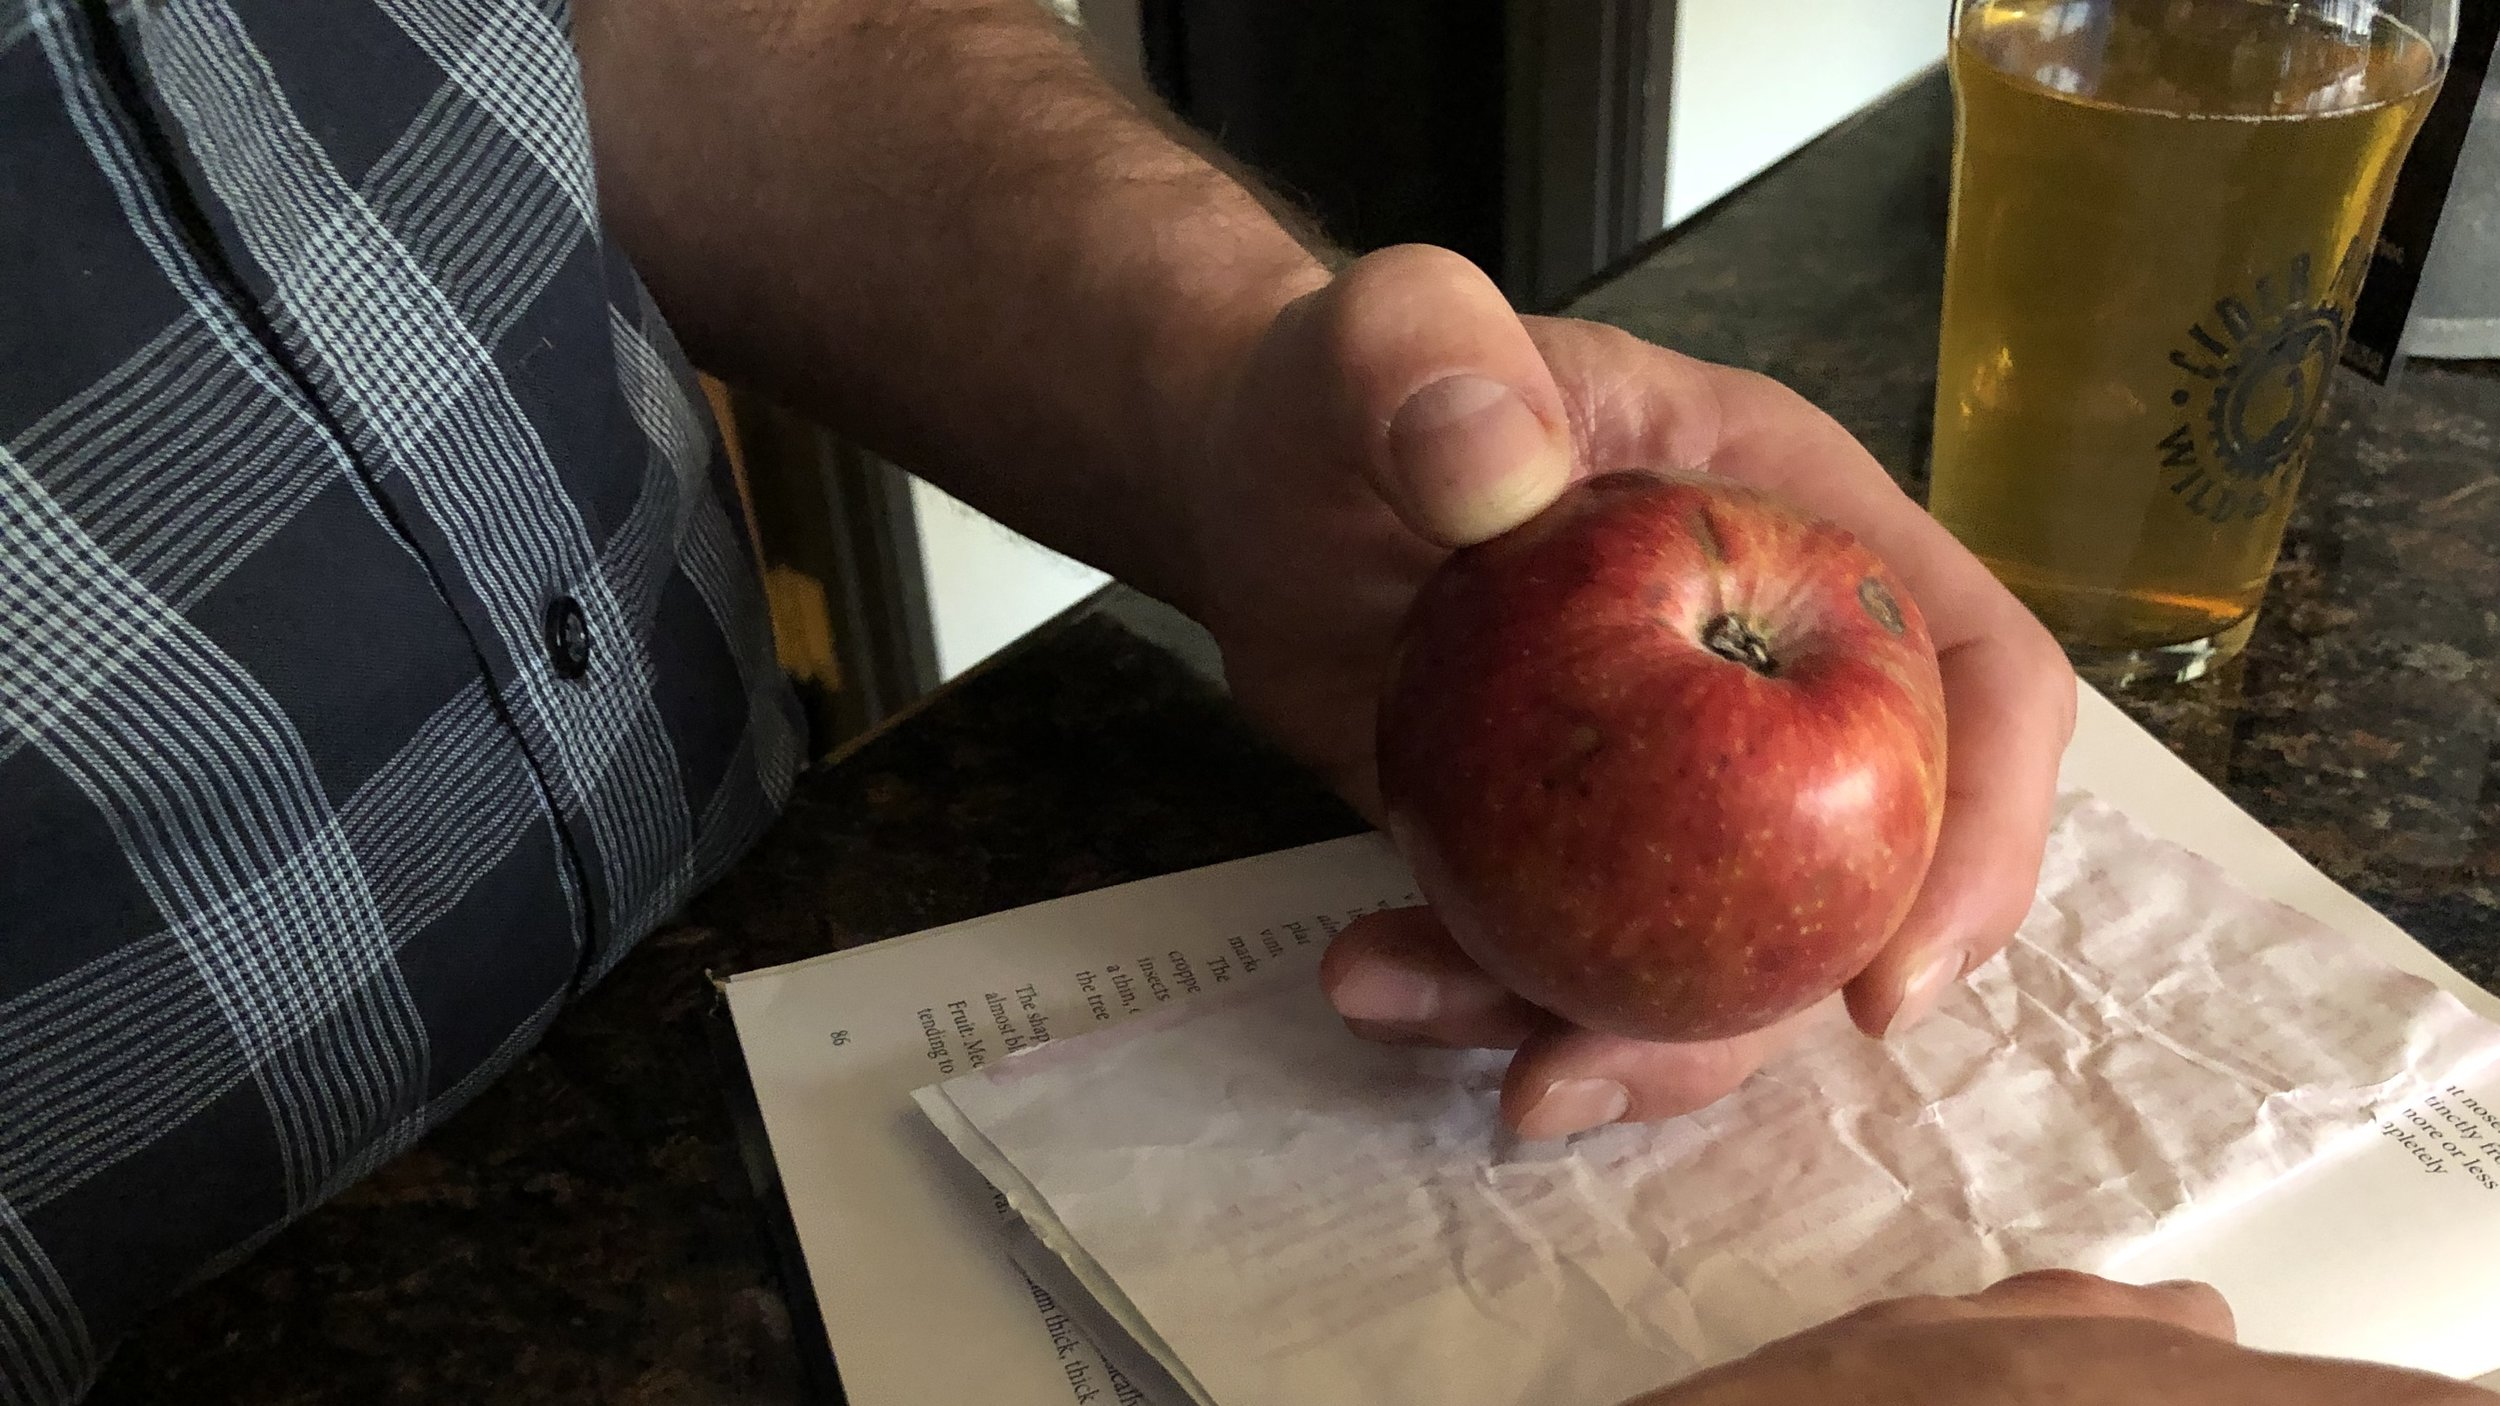 Our mutual comfort zone—talking apples.